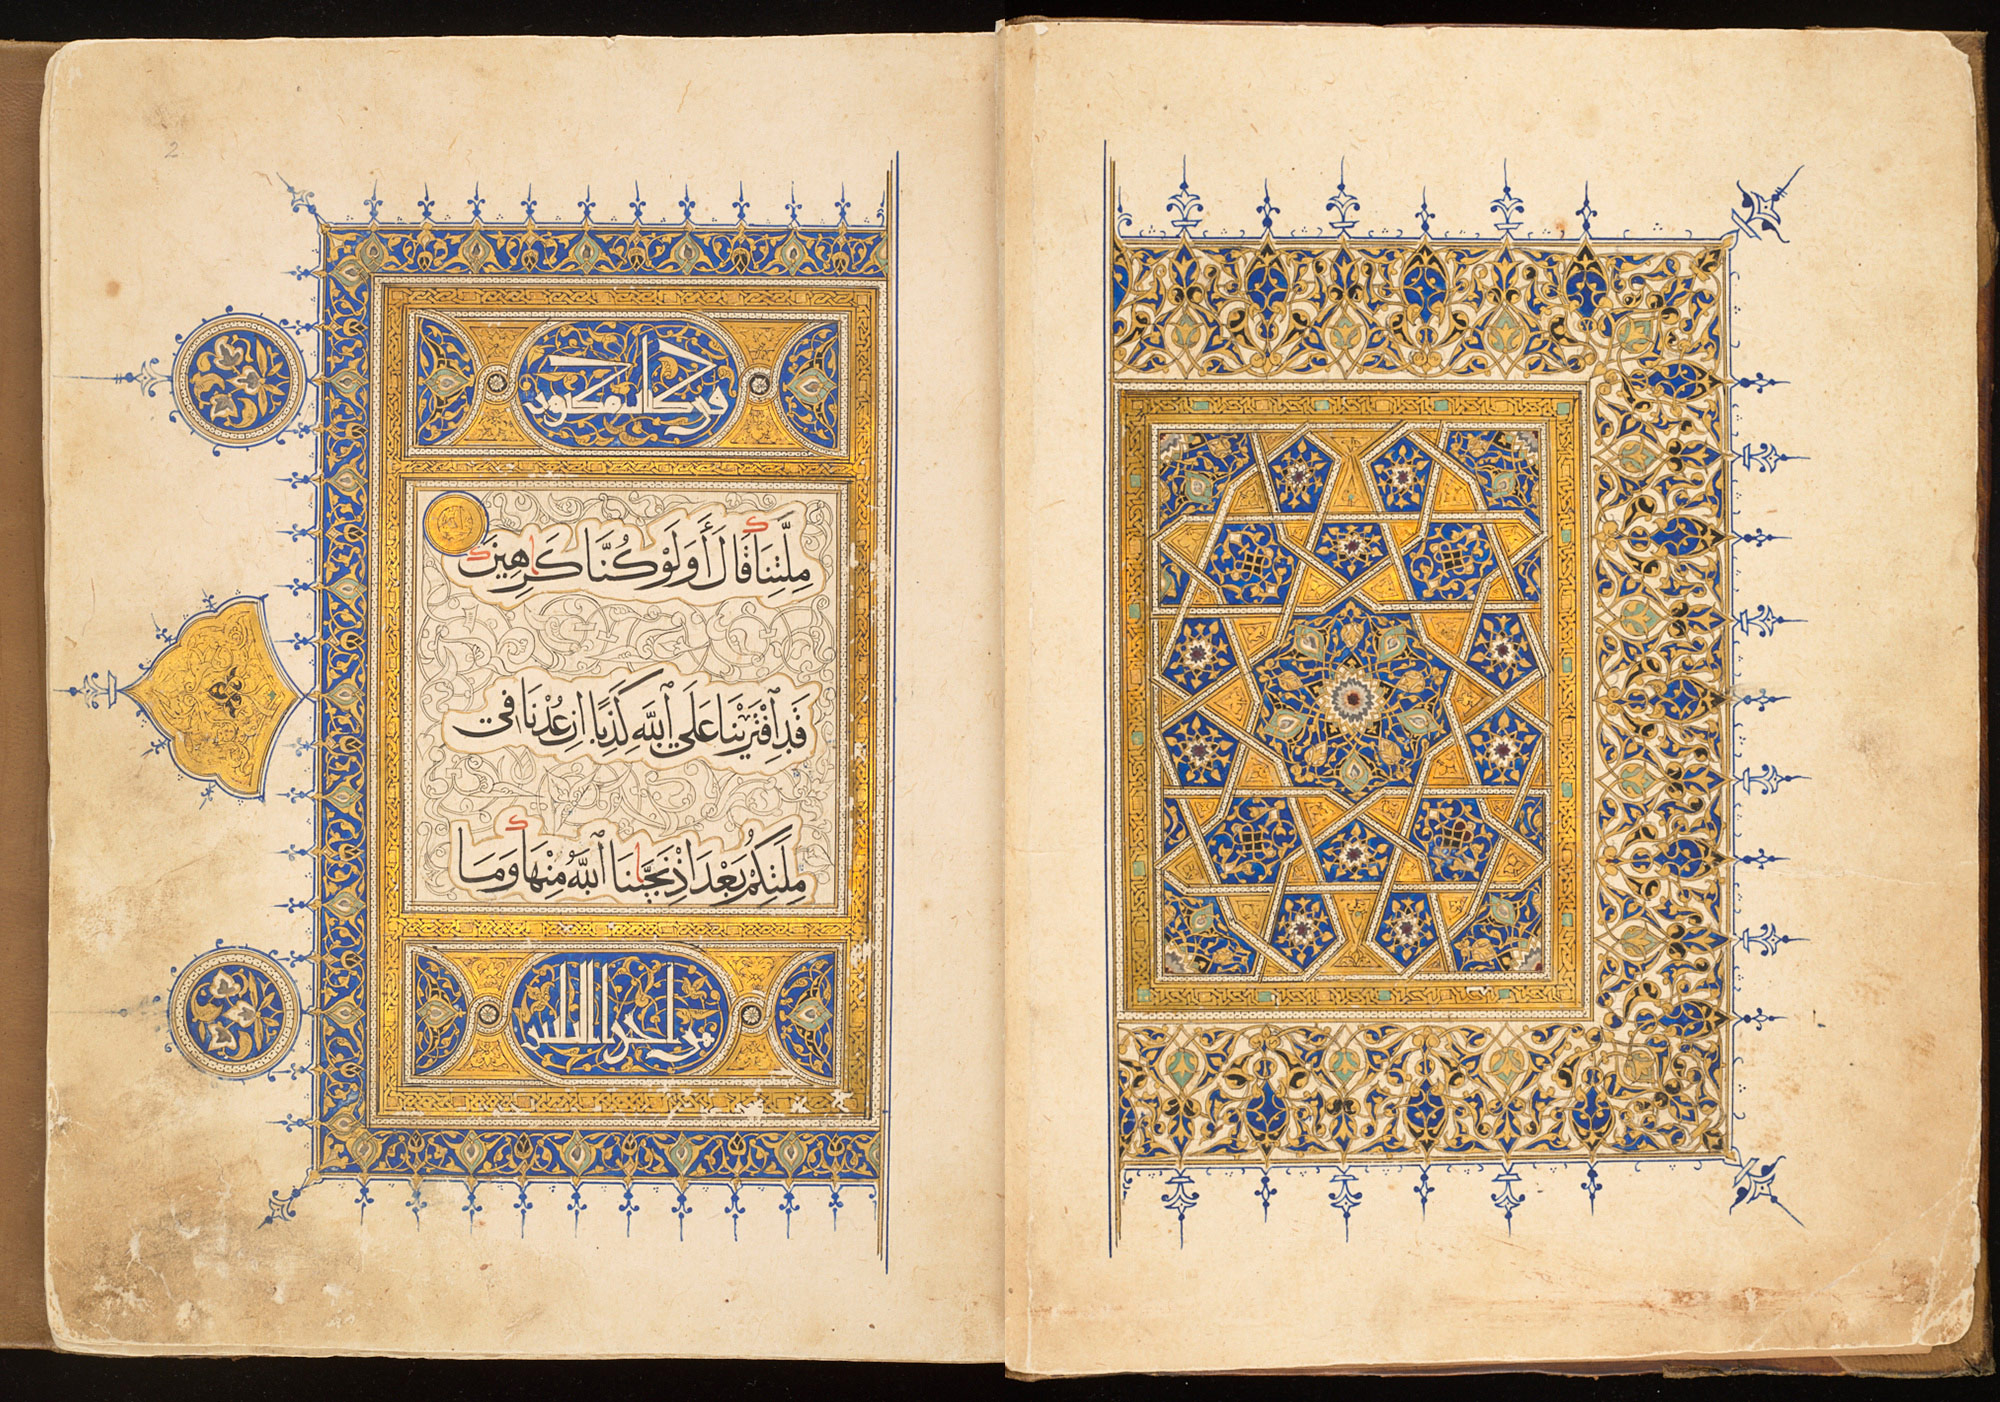 carpet page and first page of text from a Qur'an. The general effect of the carpet page design is that of a rich tapestry, based on a 10-angled, star-shaped medallion with gold and white outlines extending to form a trellis of overlapping polygons, which alternate in gold and blue.